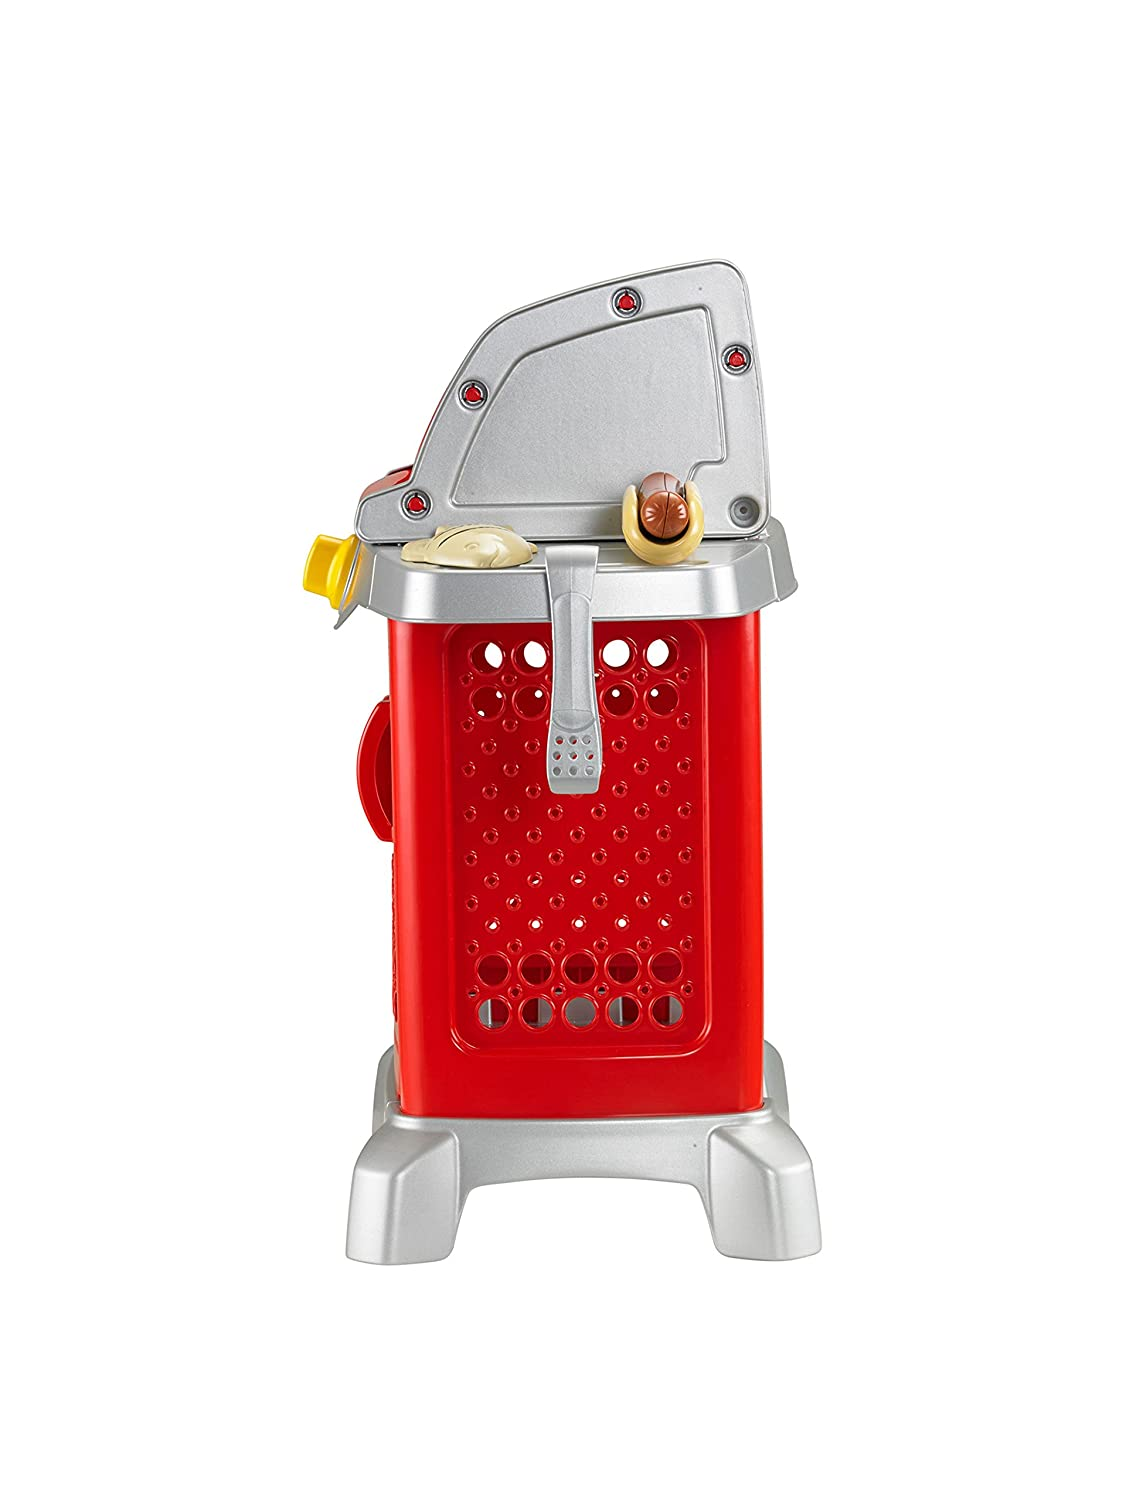 Amazon.com: Fisher-Price Grill Playset: Toys & Games